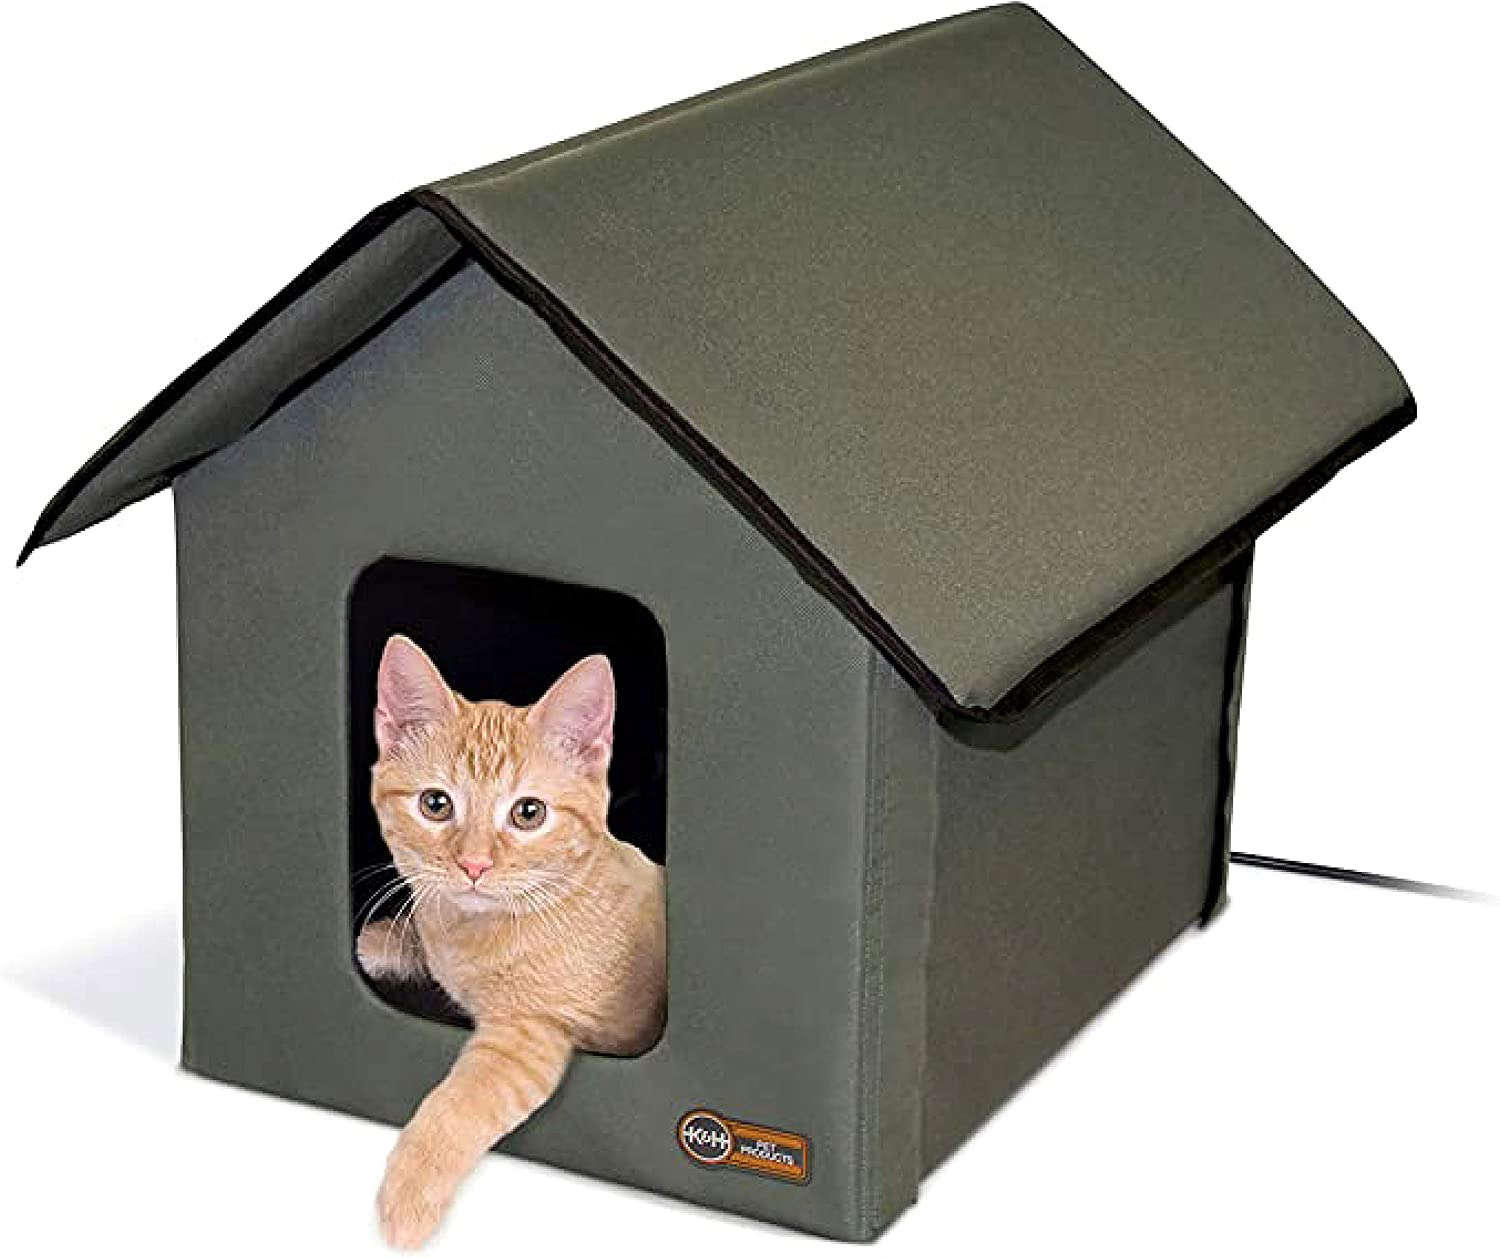 K H Pet Products 3996 Outdoor Heated Kitty House Gray Black Met Safety Listed The Original Outdoor Heated Kitty House Amazon Co Uk Pet Supplies